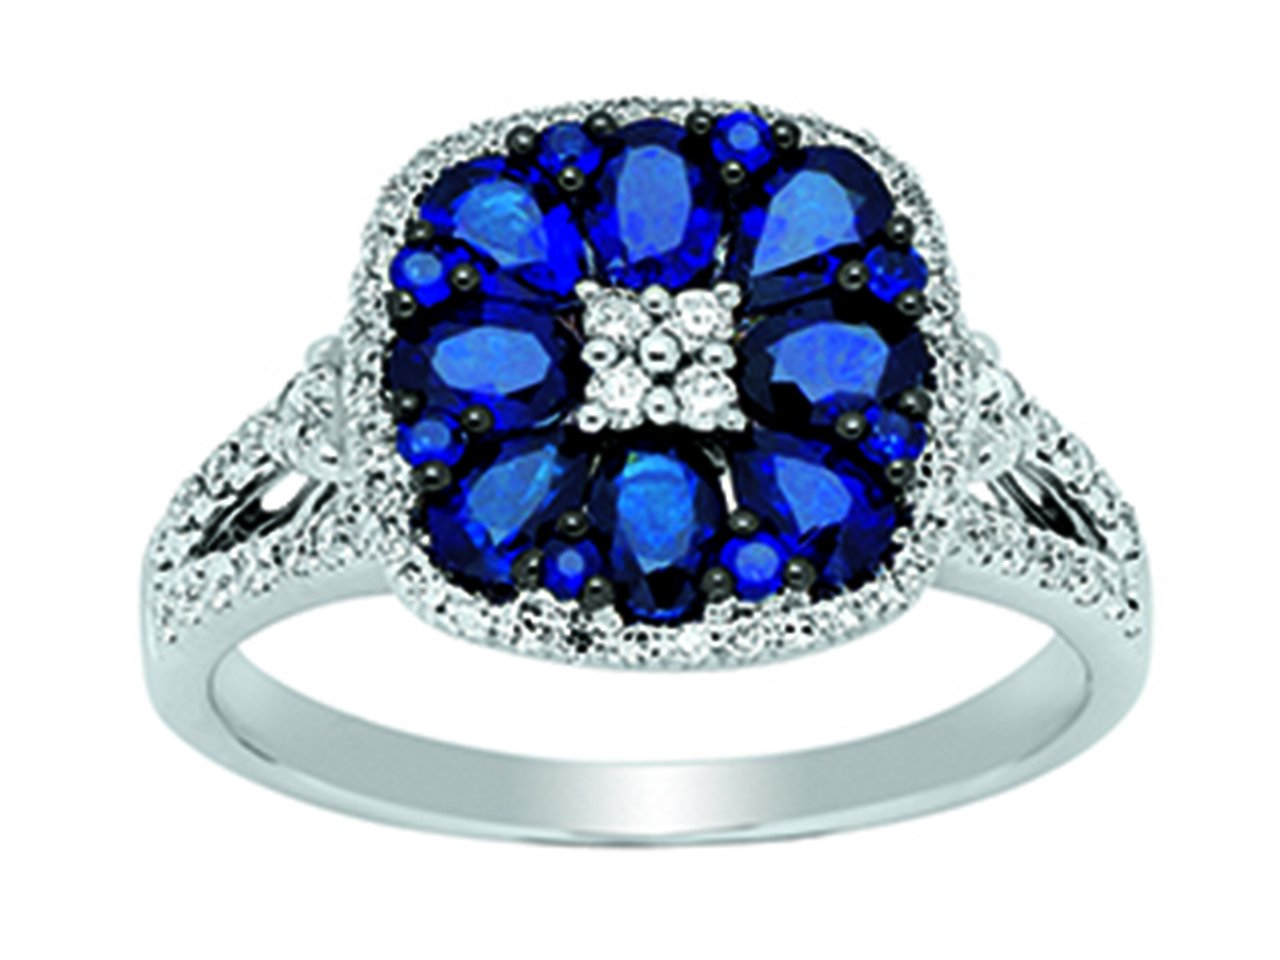 Bague Or girs 18k, saphirs 1,60ct, diamants 0,63ct, doigt 53